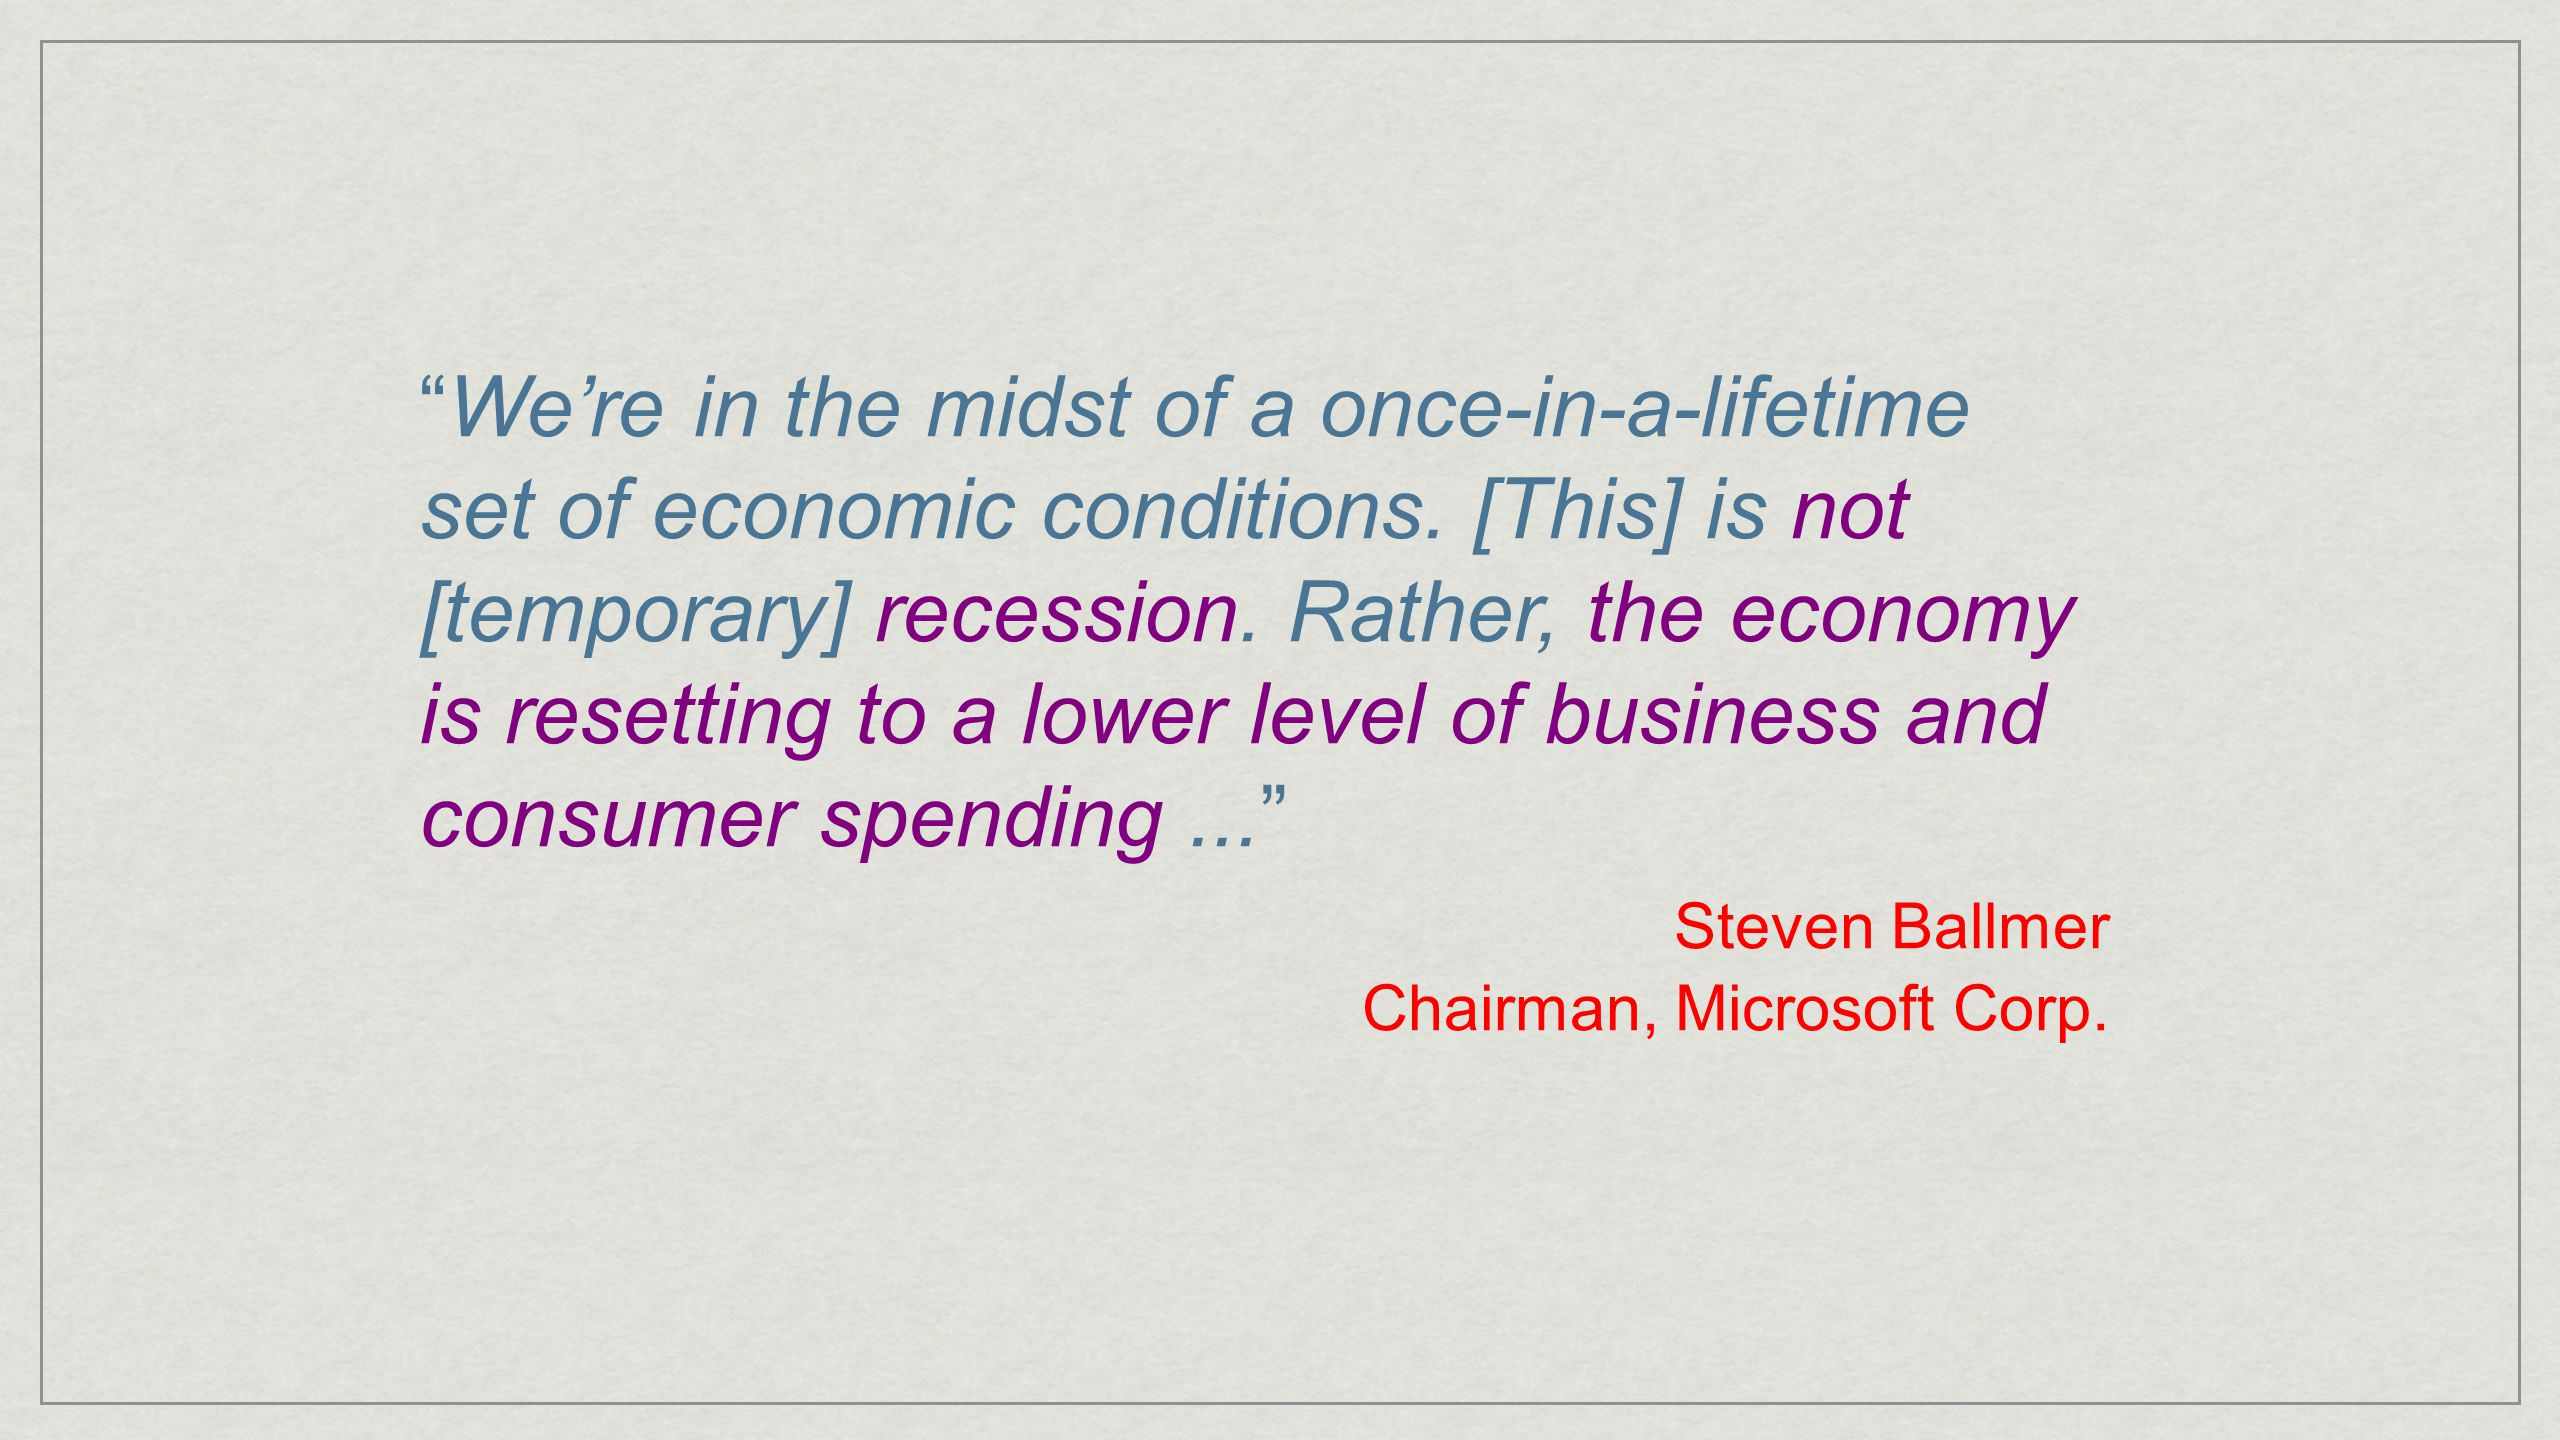 We're in the midst of a once-in-a-lifetime set of economic conditions.